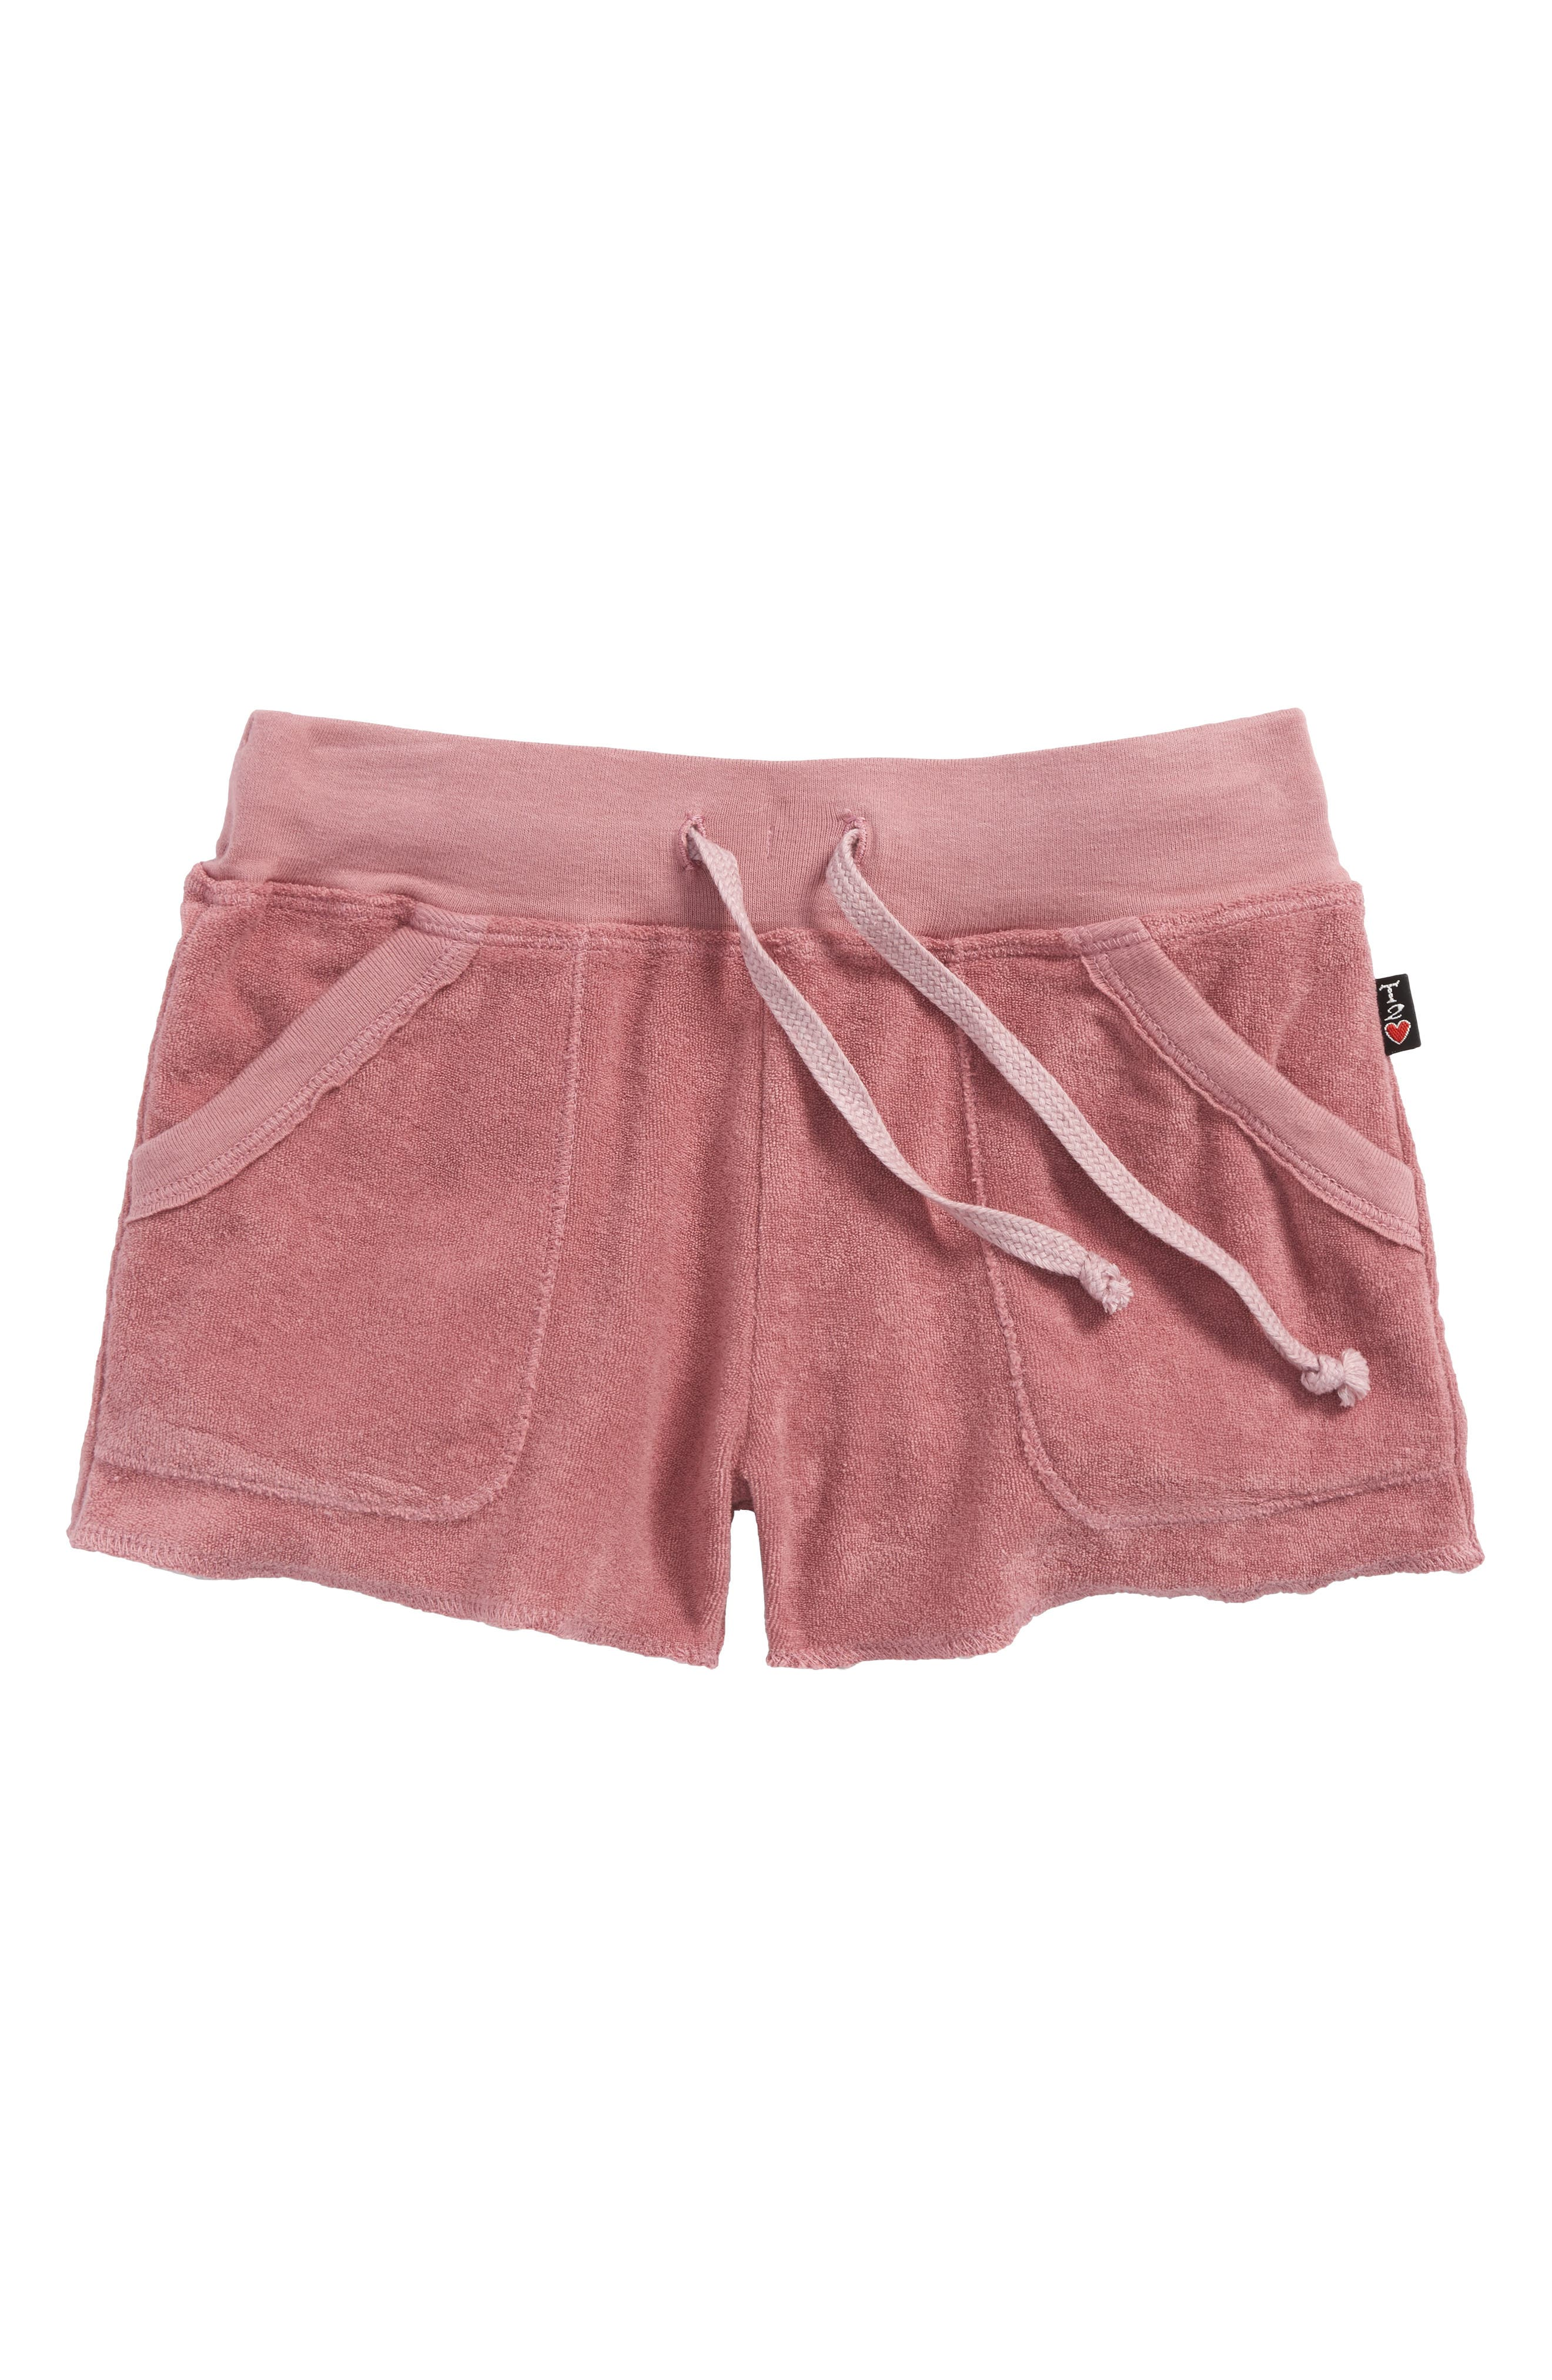 T2Love French Terry Shorts,                             Main thumbnail 1, color,                             600